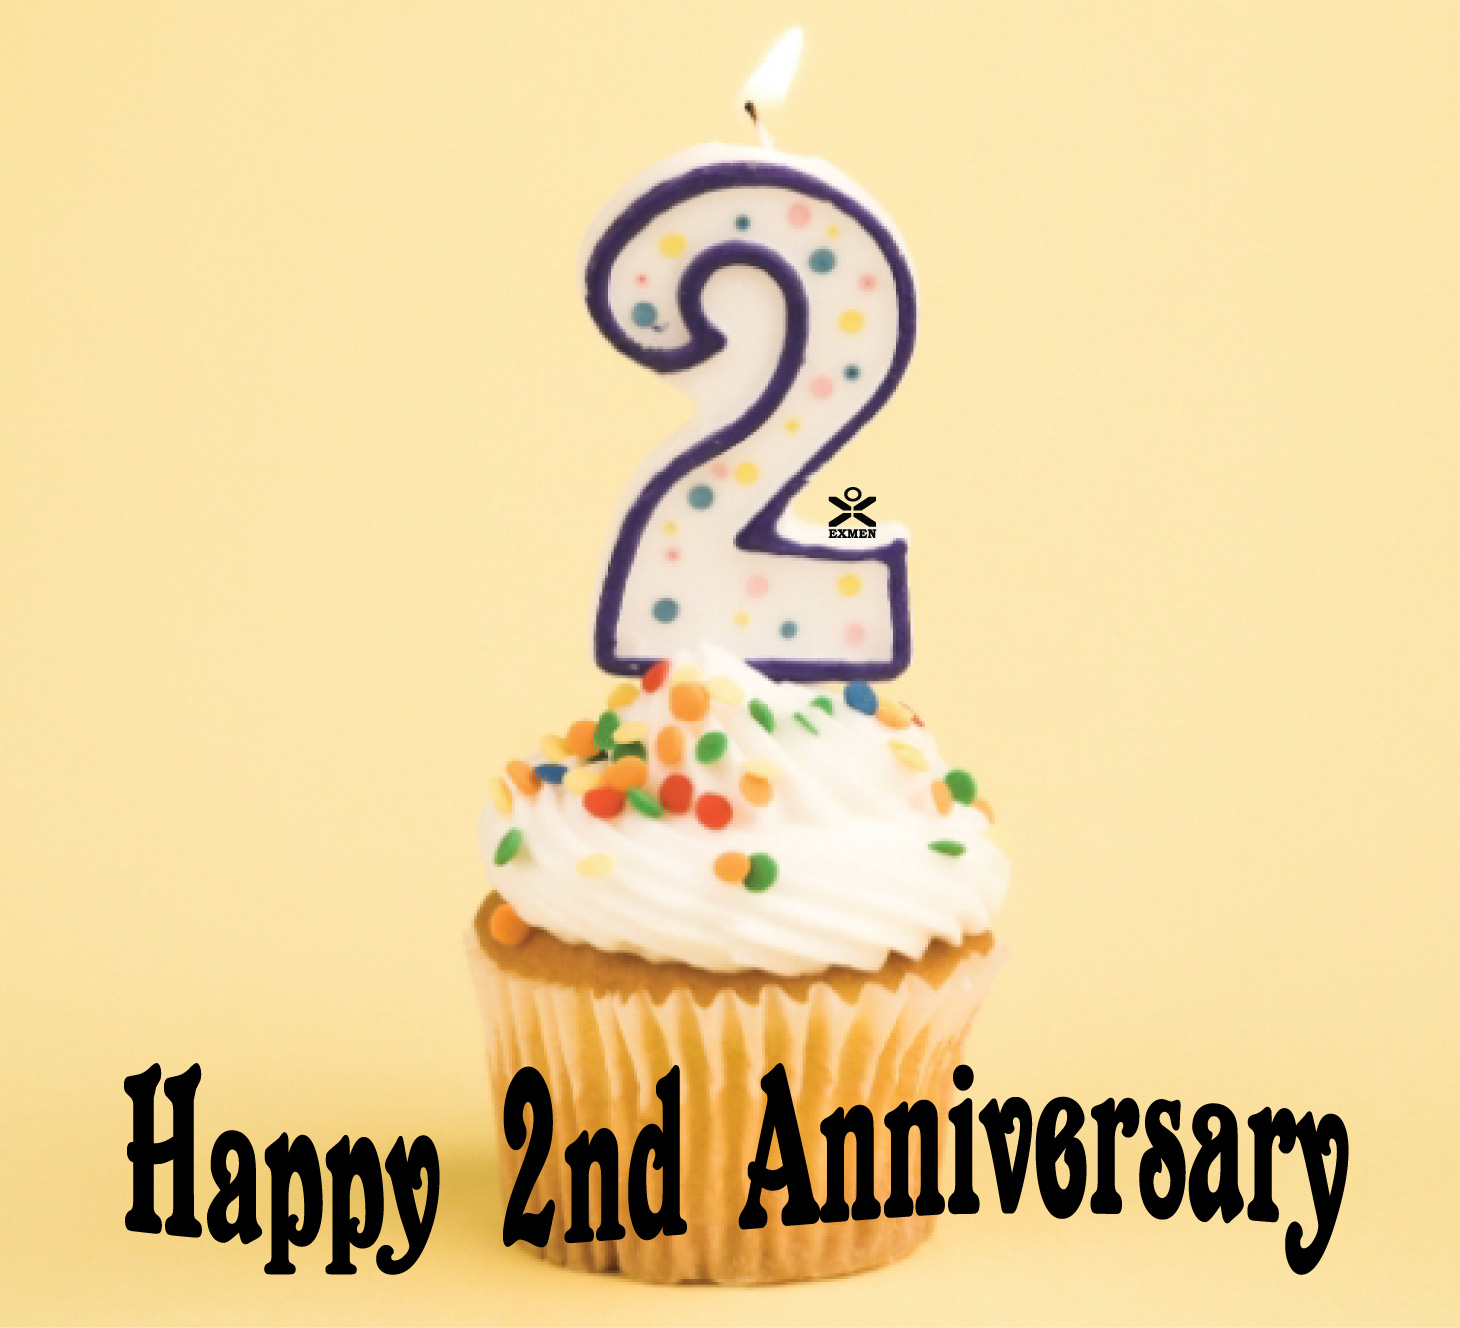 Happy Office Anniversary Vatozozdevelopment